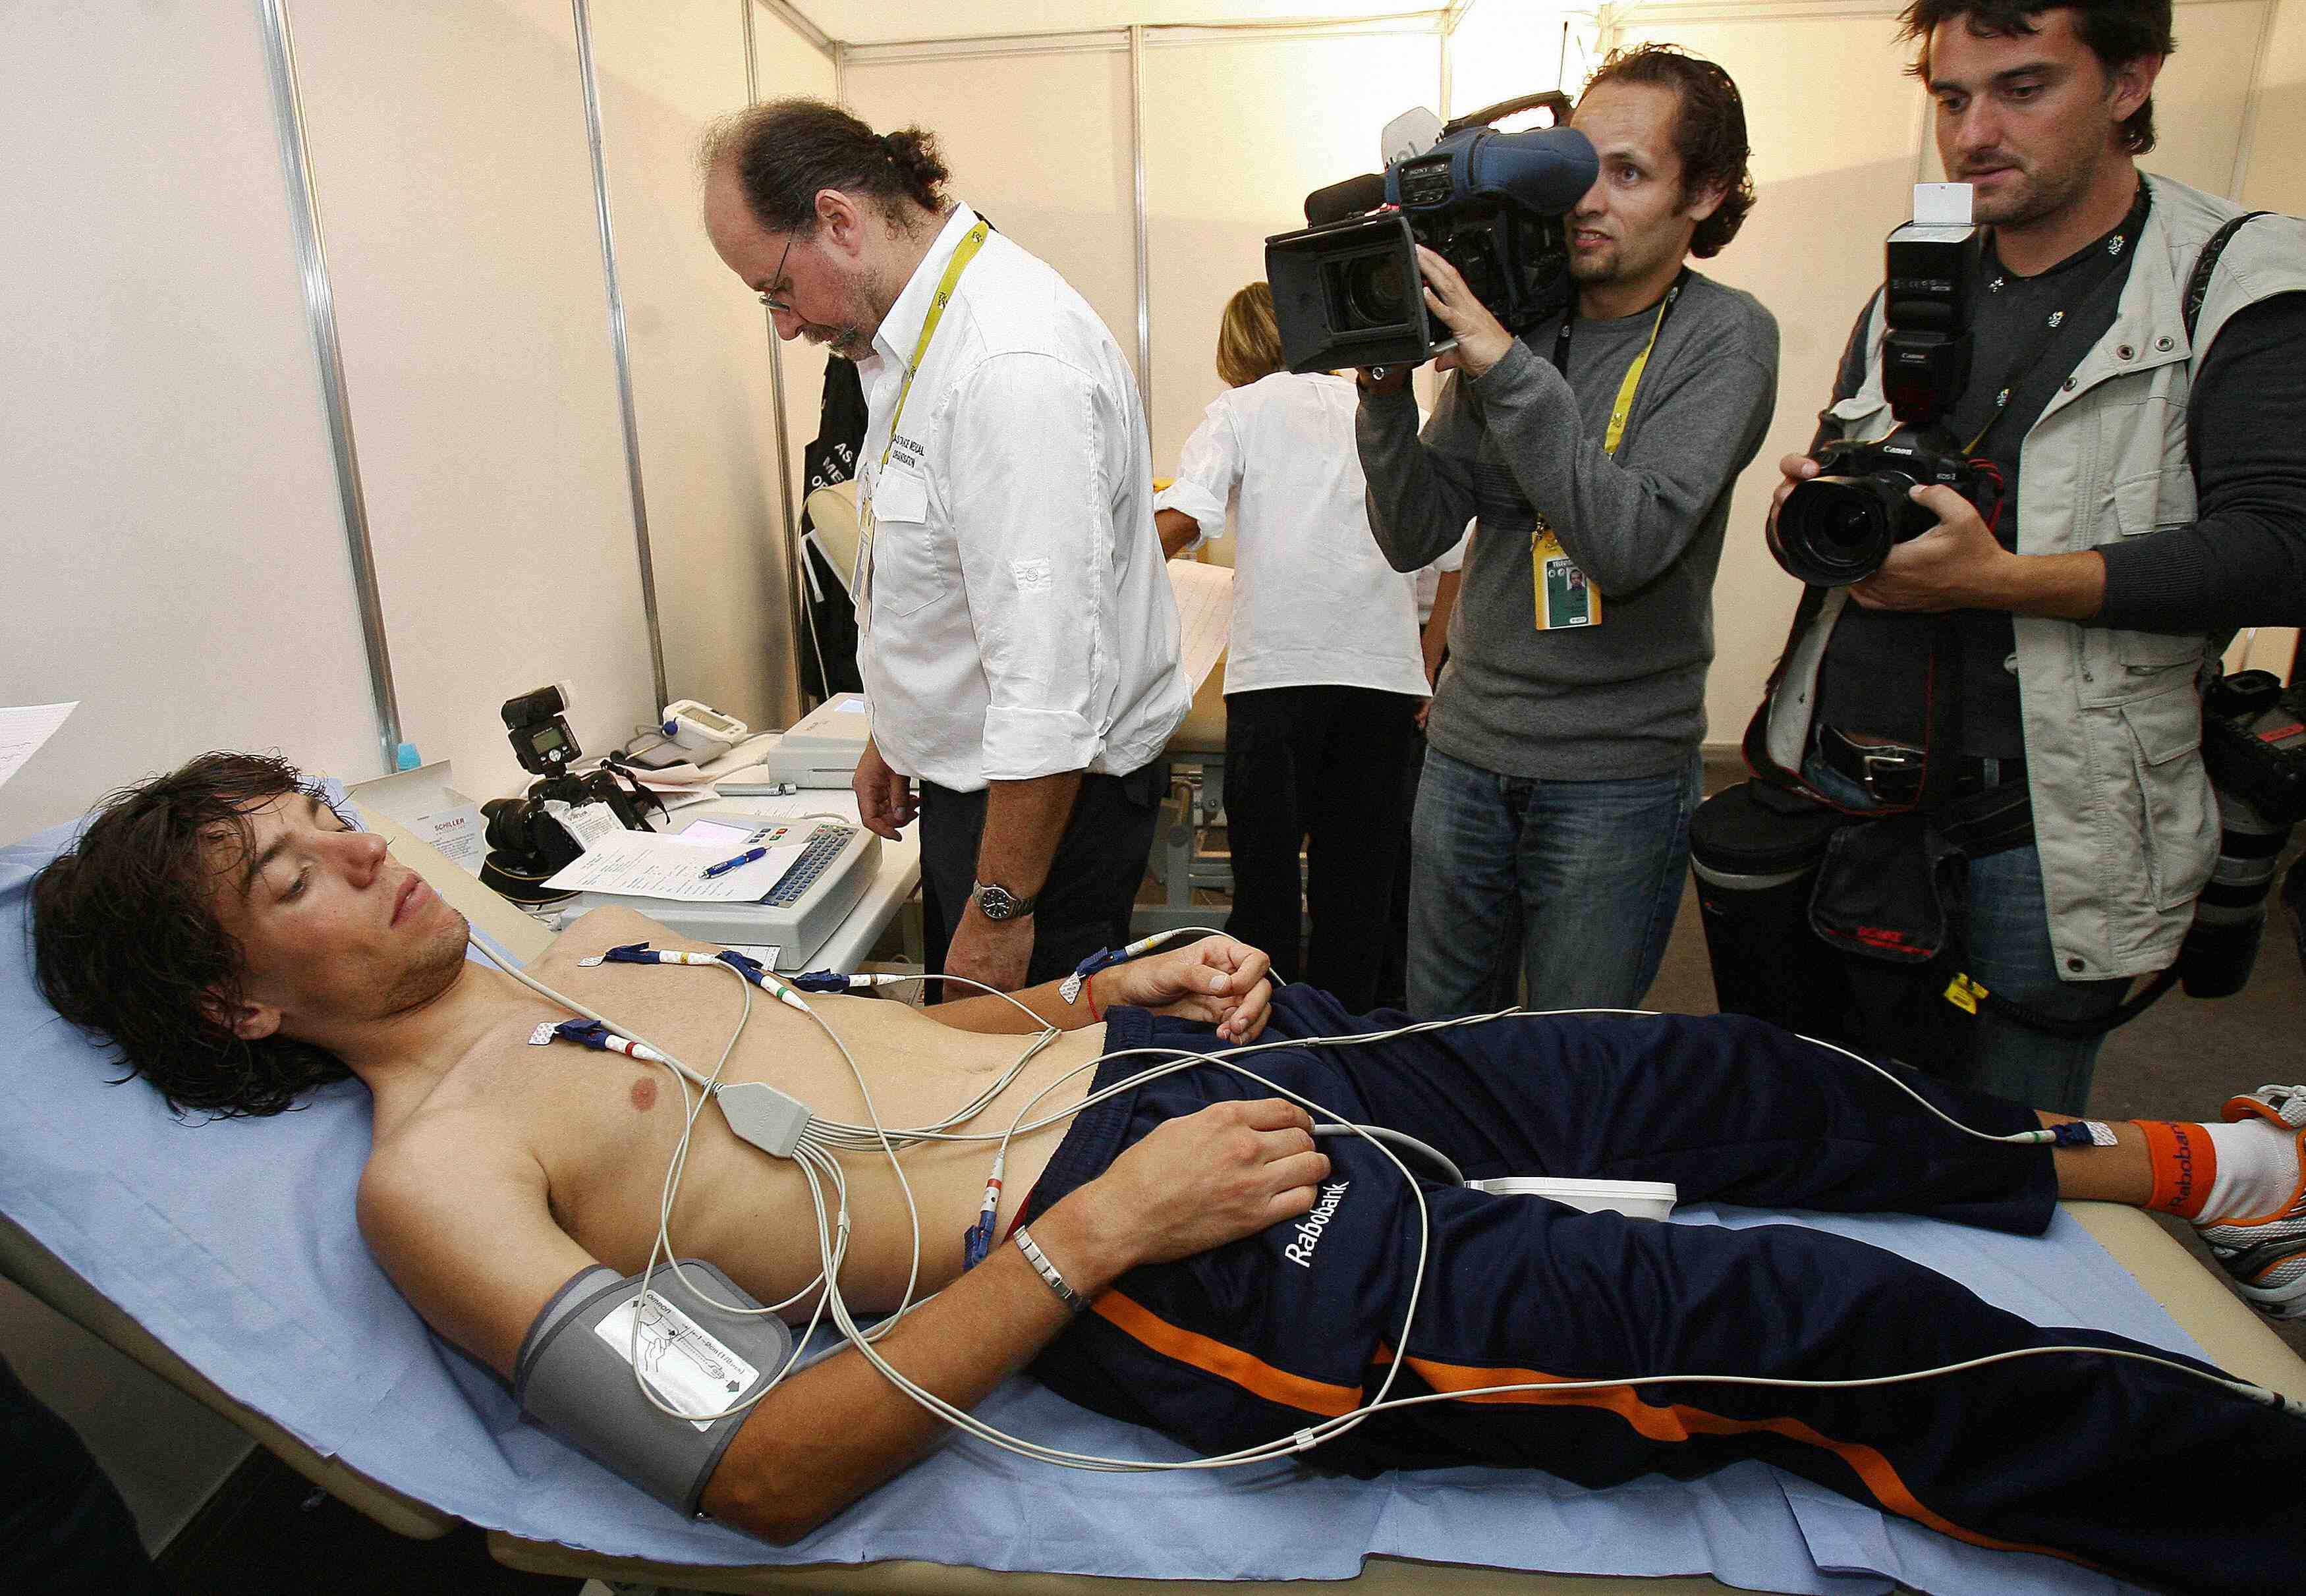 Thomas Dekker undergoes the traditional medical check up at the London Excel Exhibition Center, two days before the official start of the 2007 Tour de France.